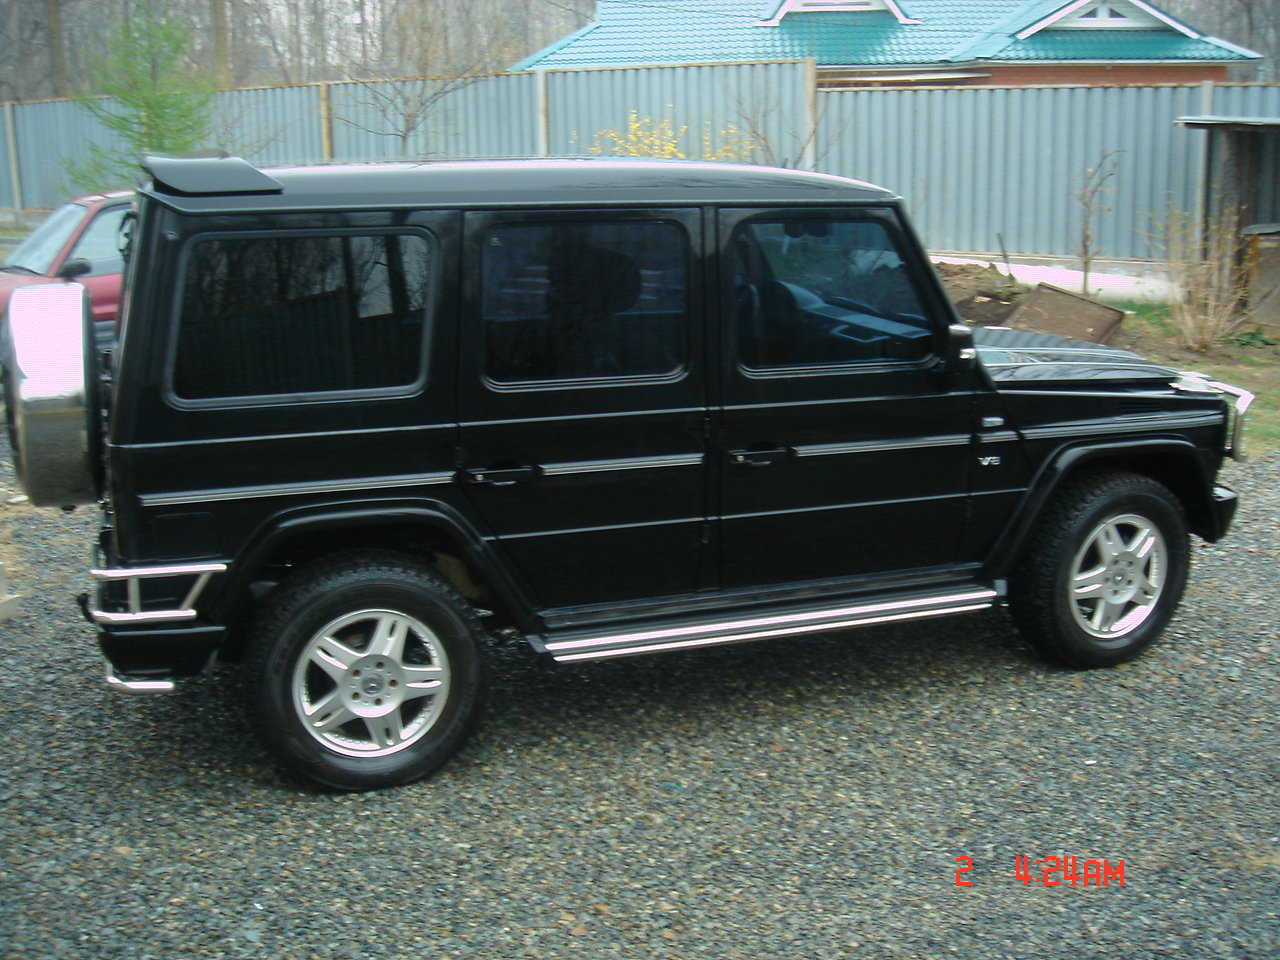 2002 mercedes benz g class photos 5 0 gasoline. Black Bedroom Furniture Sets. Home Design Ideas